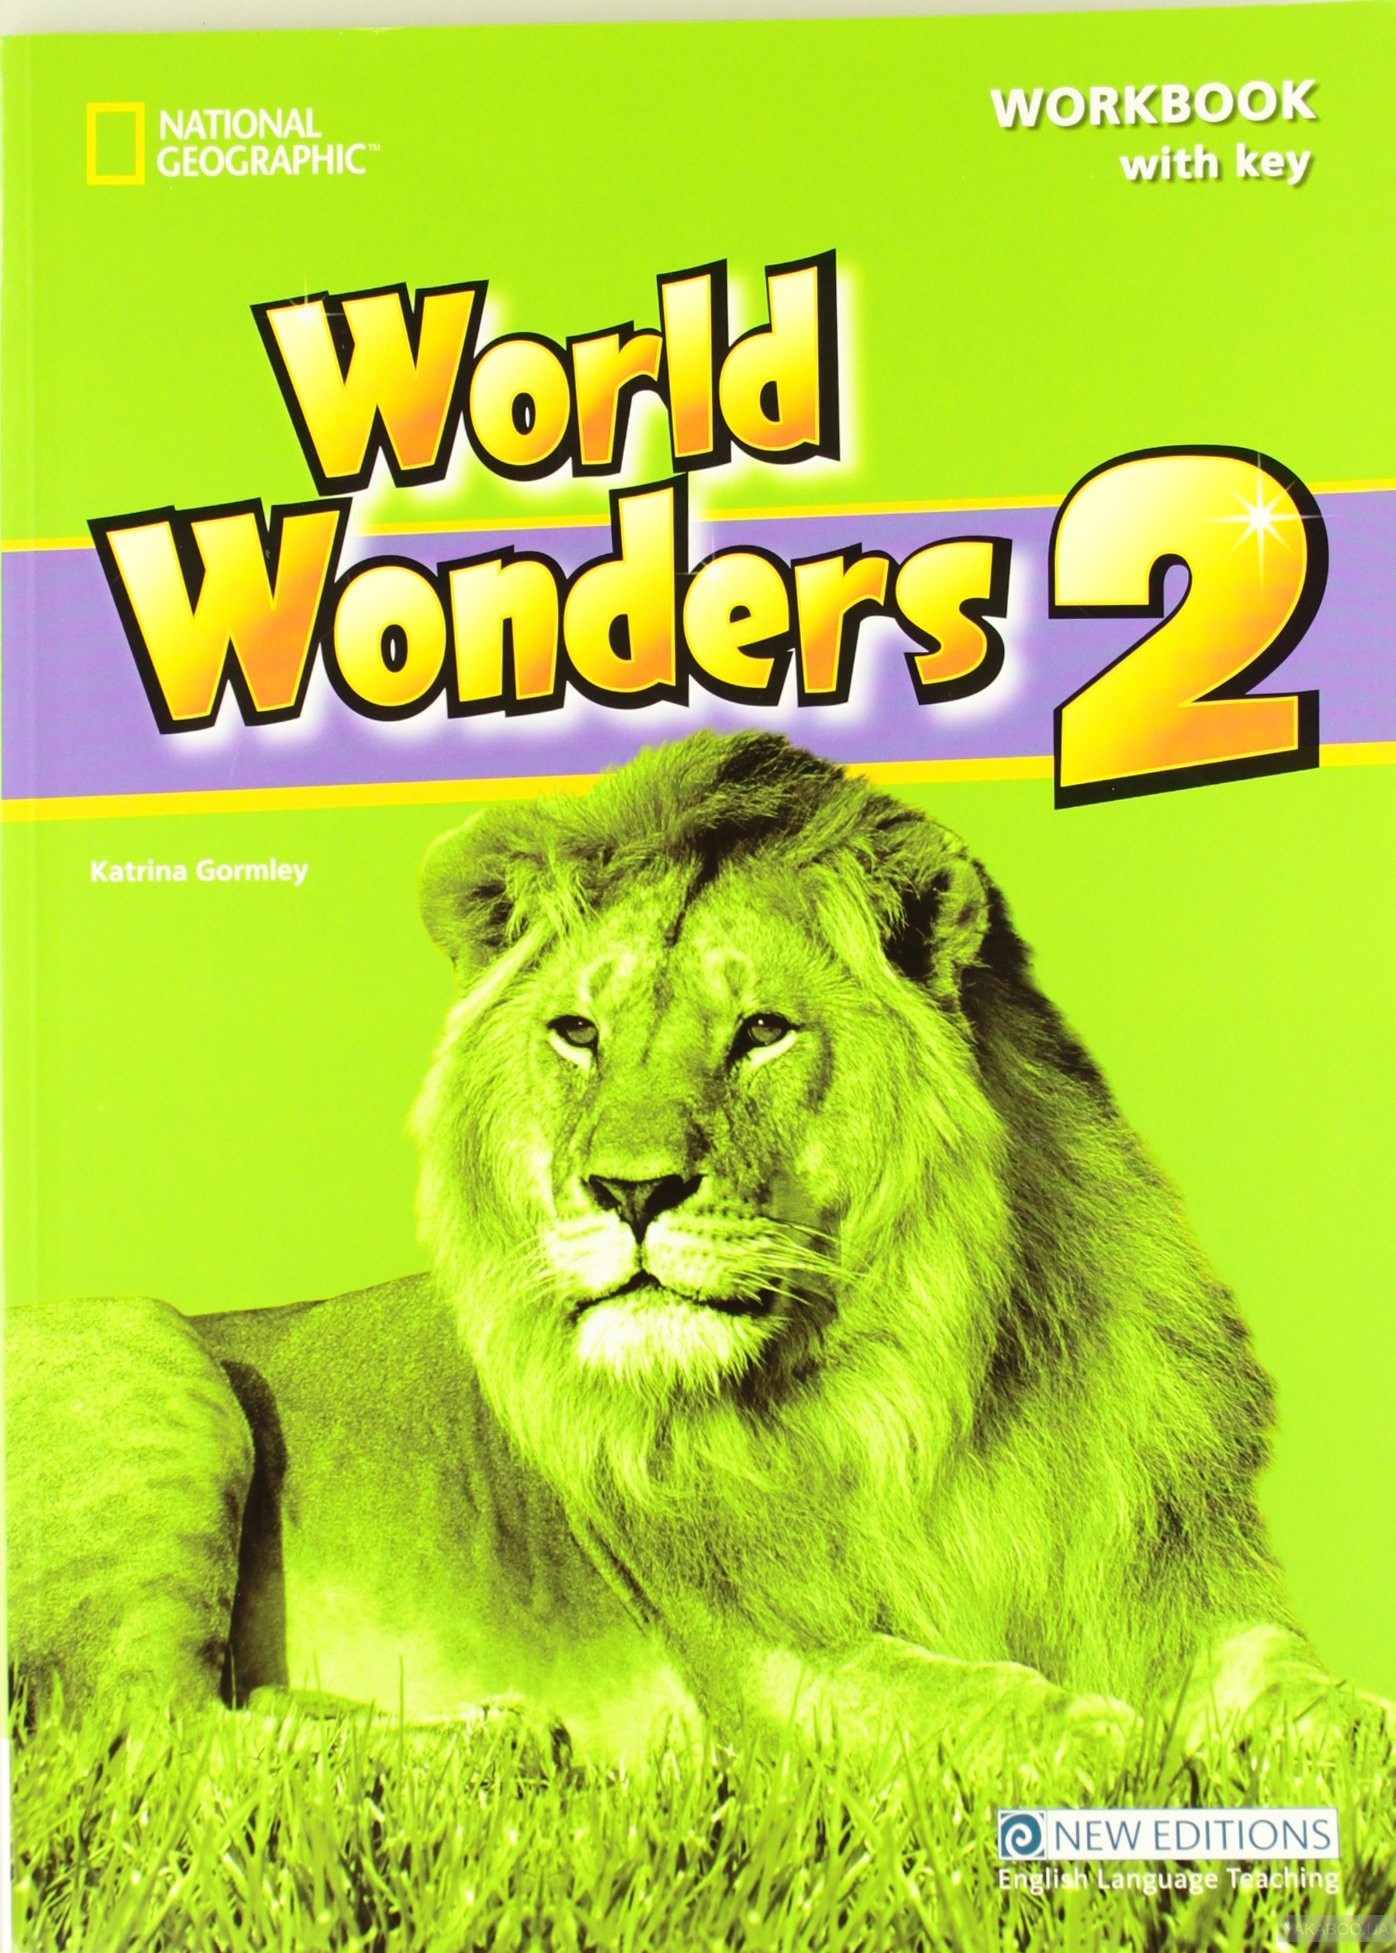 World Wonders 2. Workbook with Key